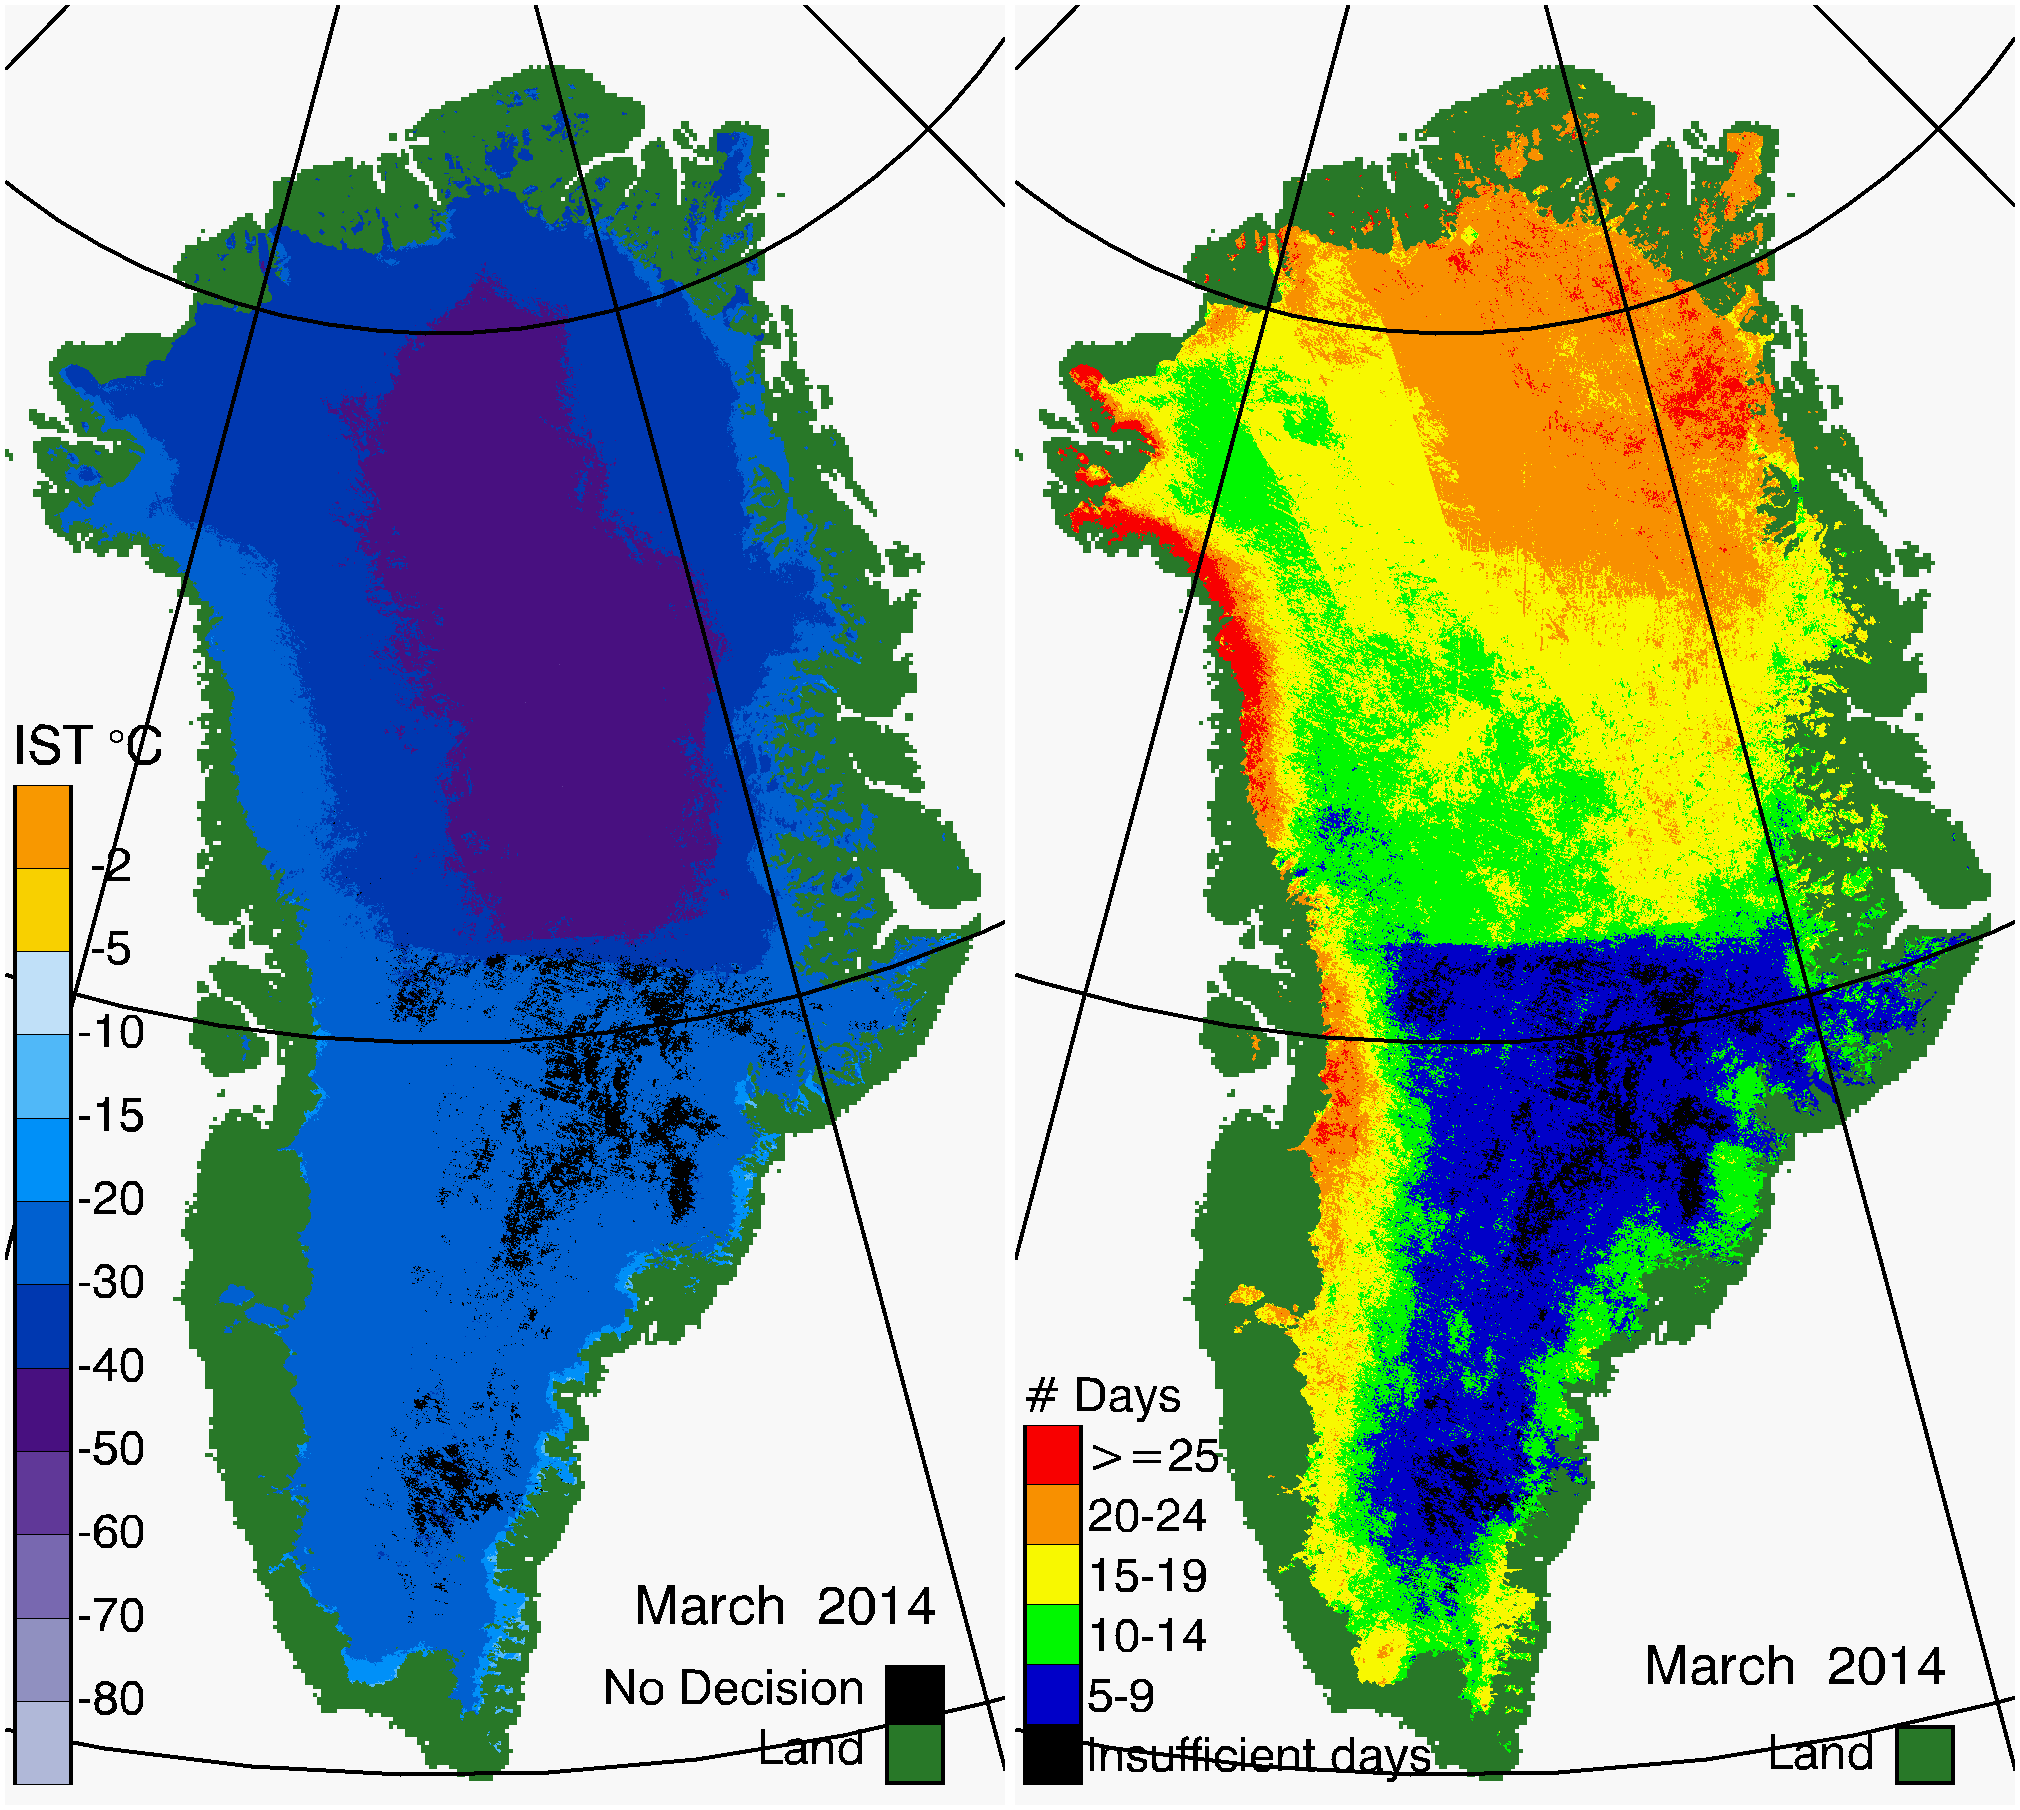 Greenland Surface Temp 03/2014